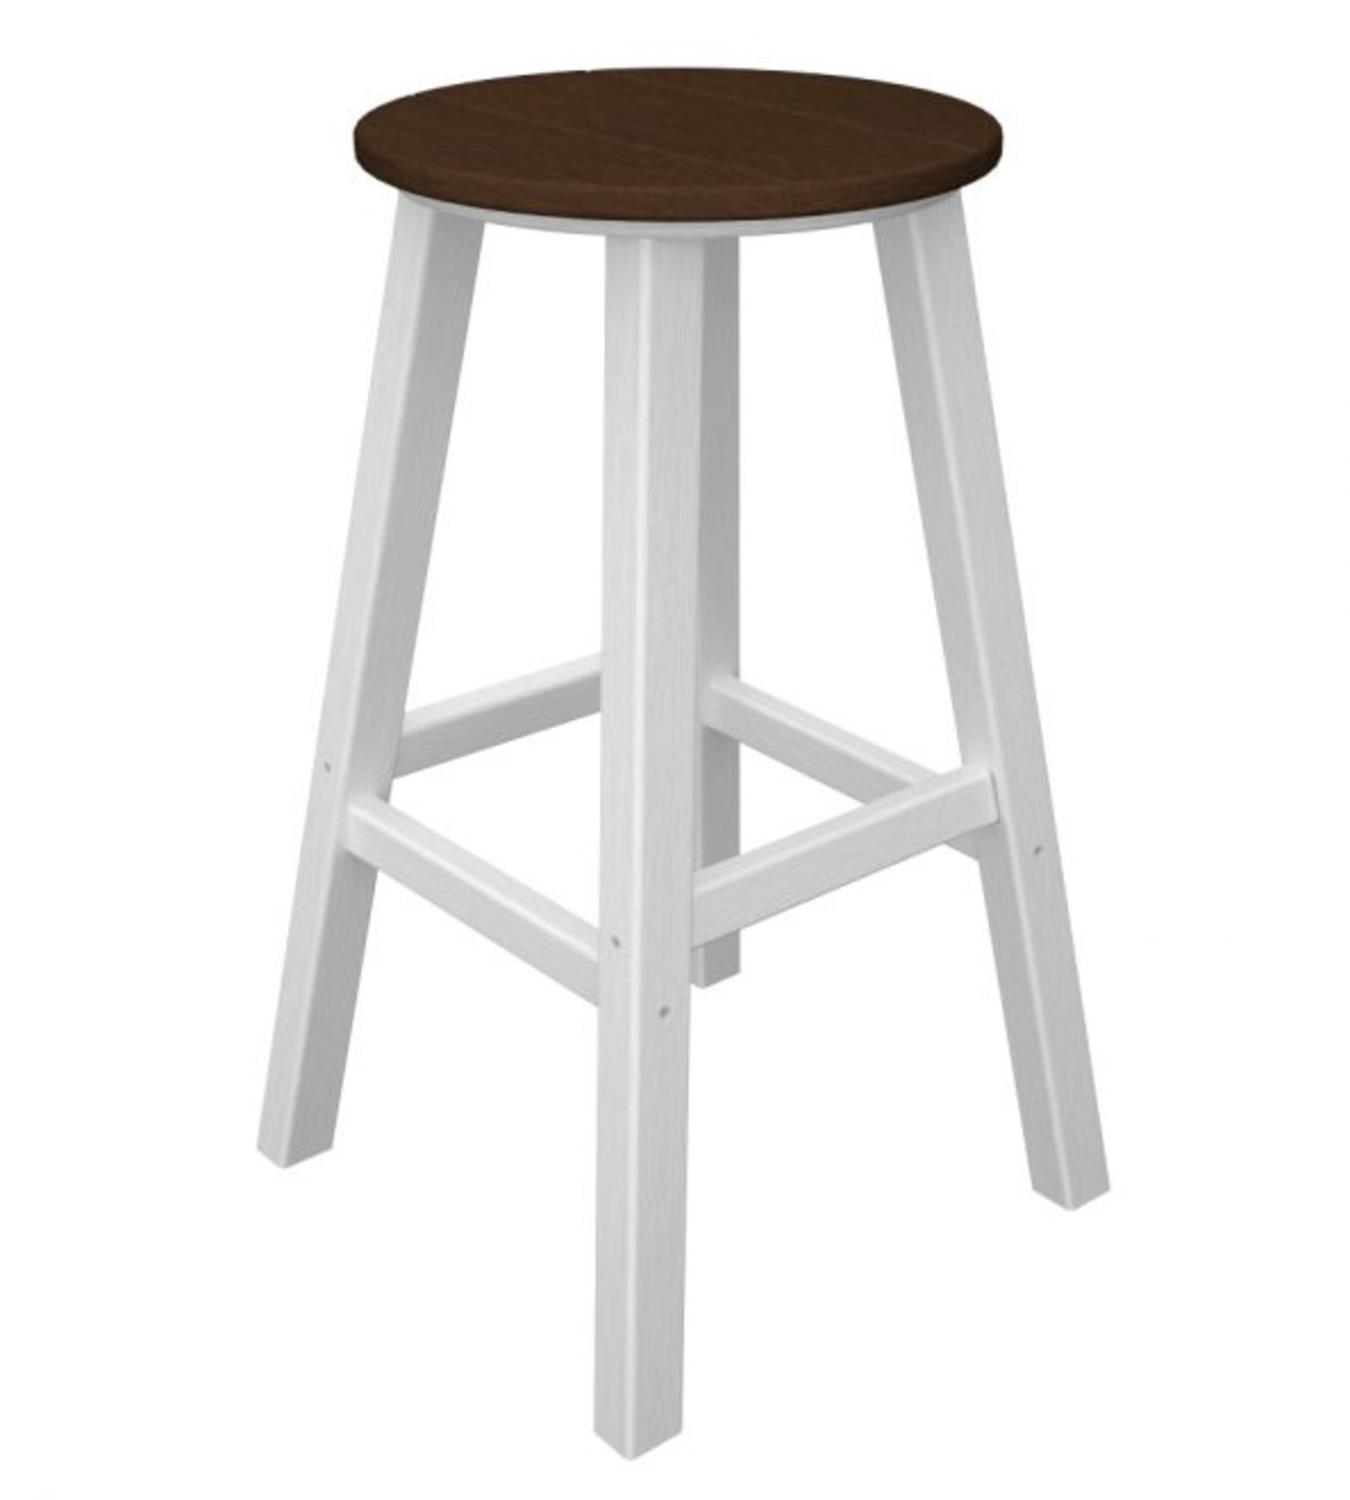 Pack of 2 Recycled Au Courant Outdoor Bar Height Stools -White & Chocolate Brown